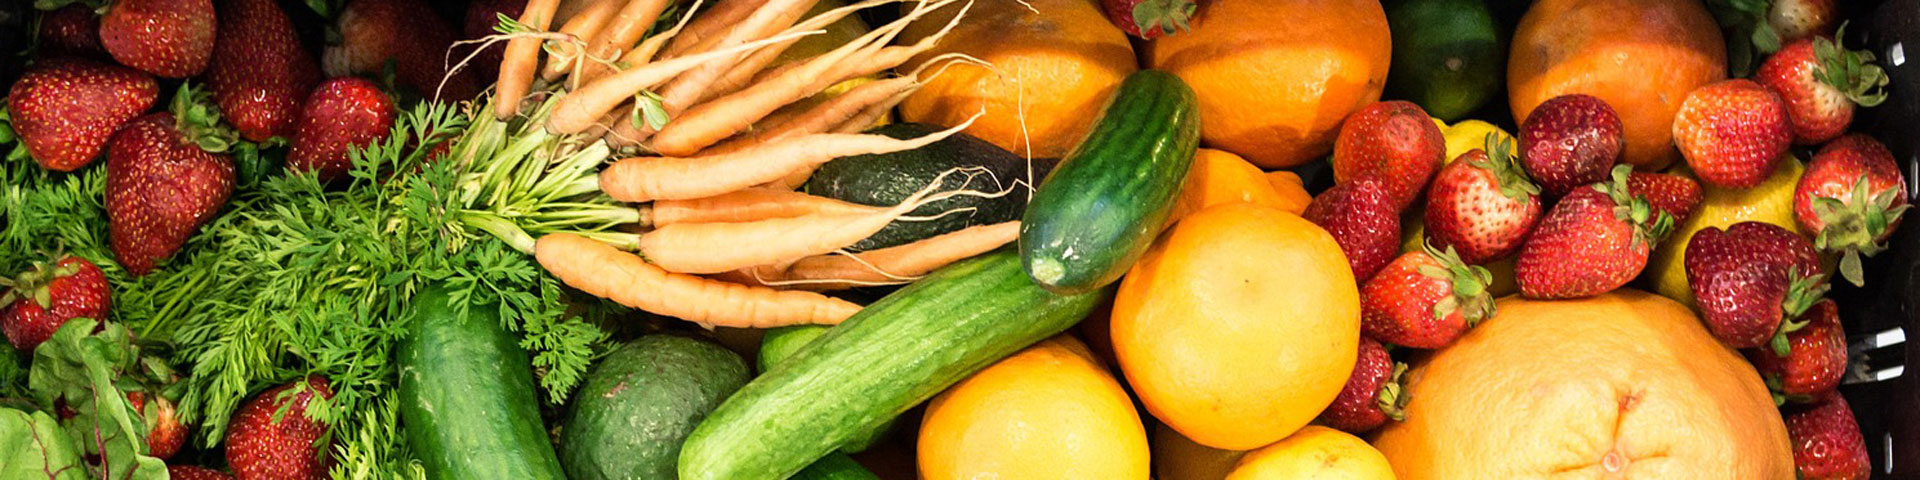 An assortment of vegetables and fruit including carrots, squash, oranges, and strawberries.